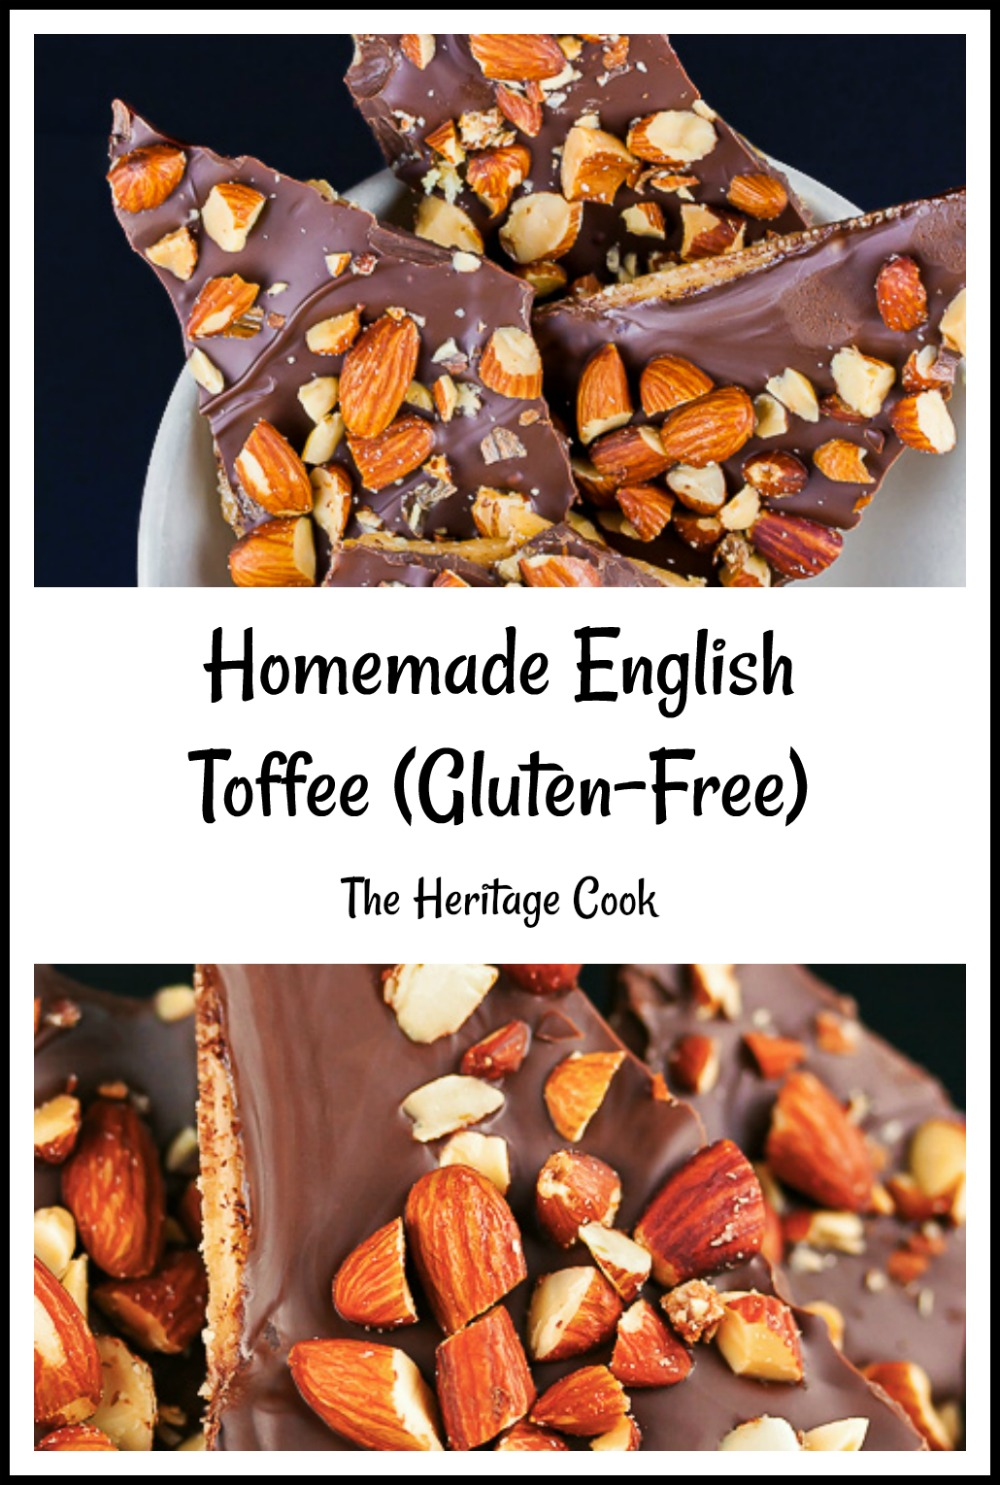 Homemade English Toffee © 2019 Jane Bonacci, The Heritage Cook